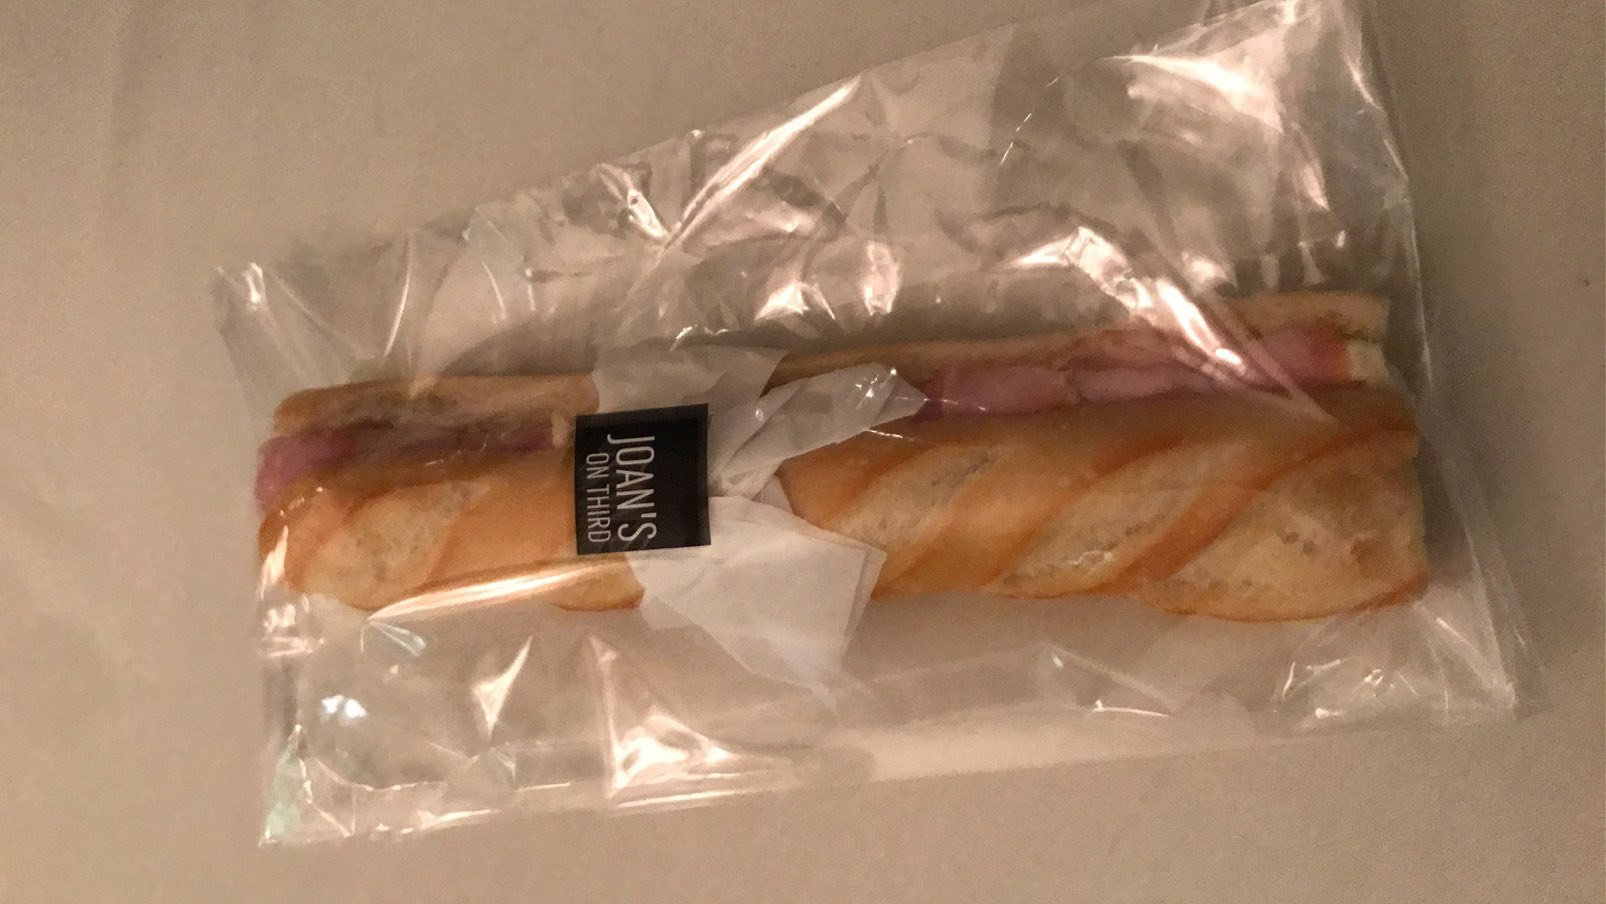 Which celebrity smuggled 30 sandwiches into the Golden Globes?